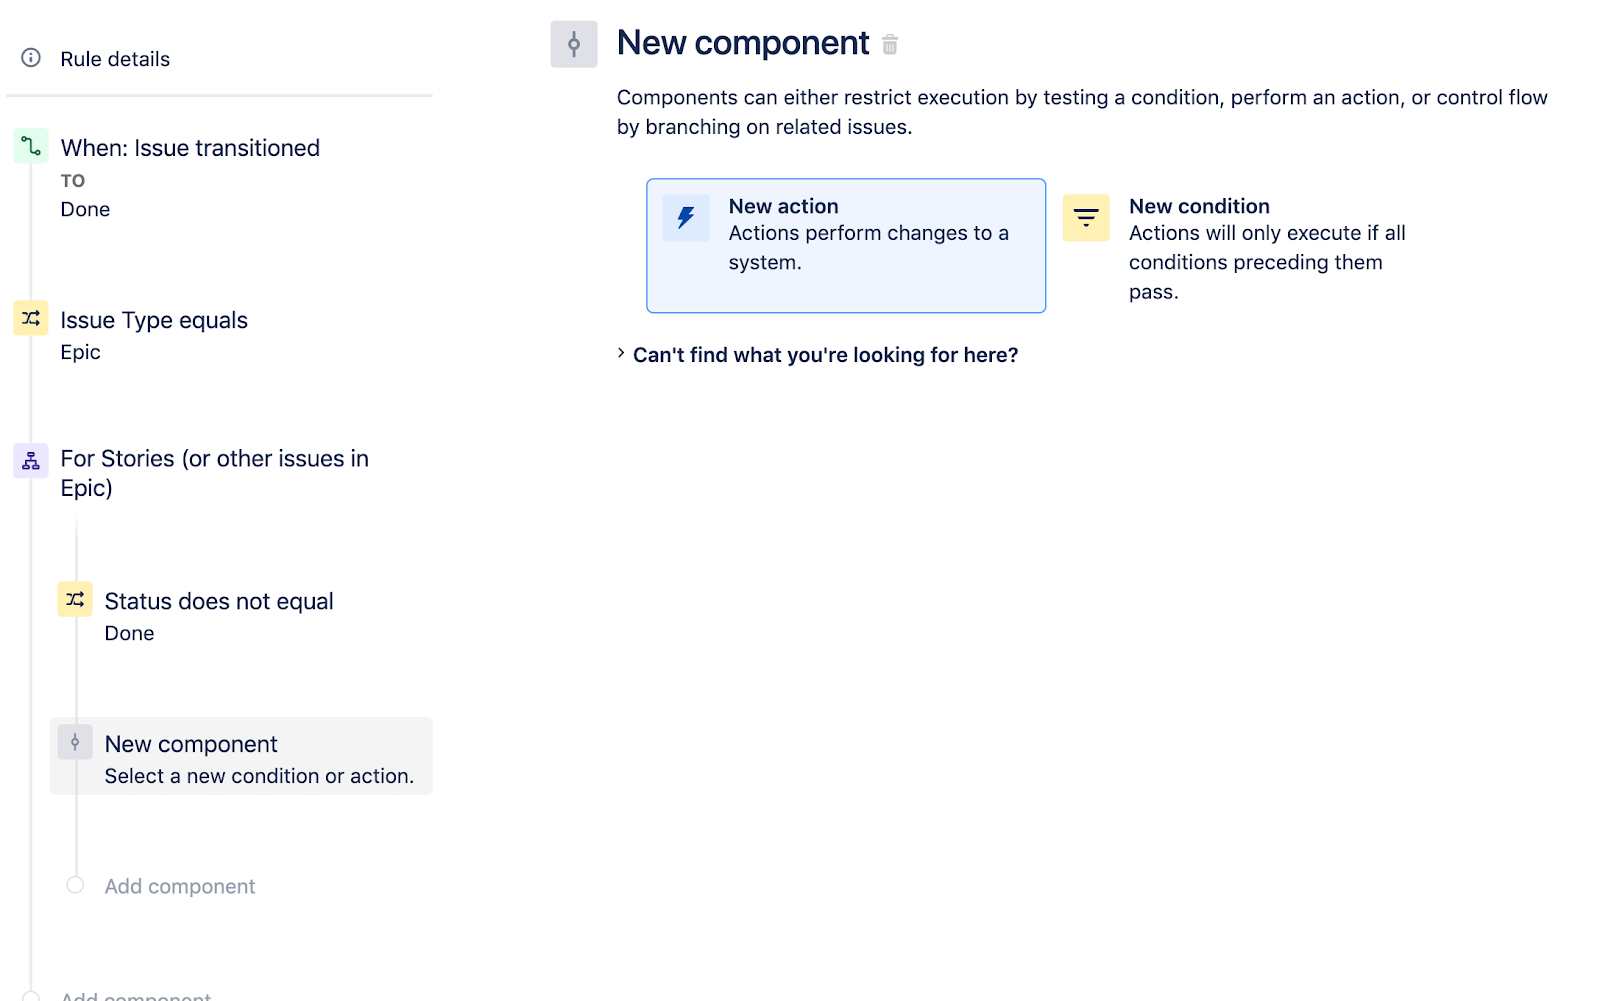 Selecting new action as a new component in Jira Software